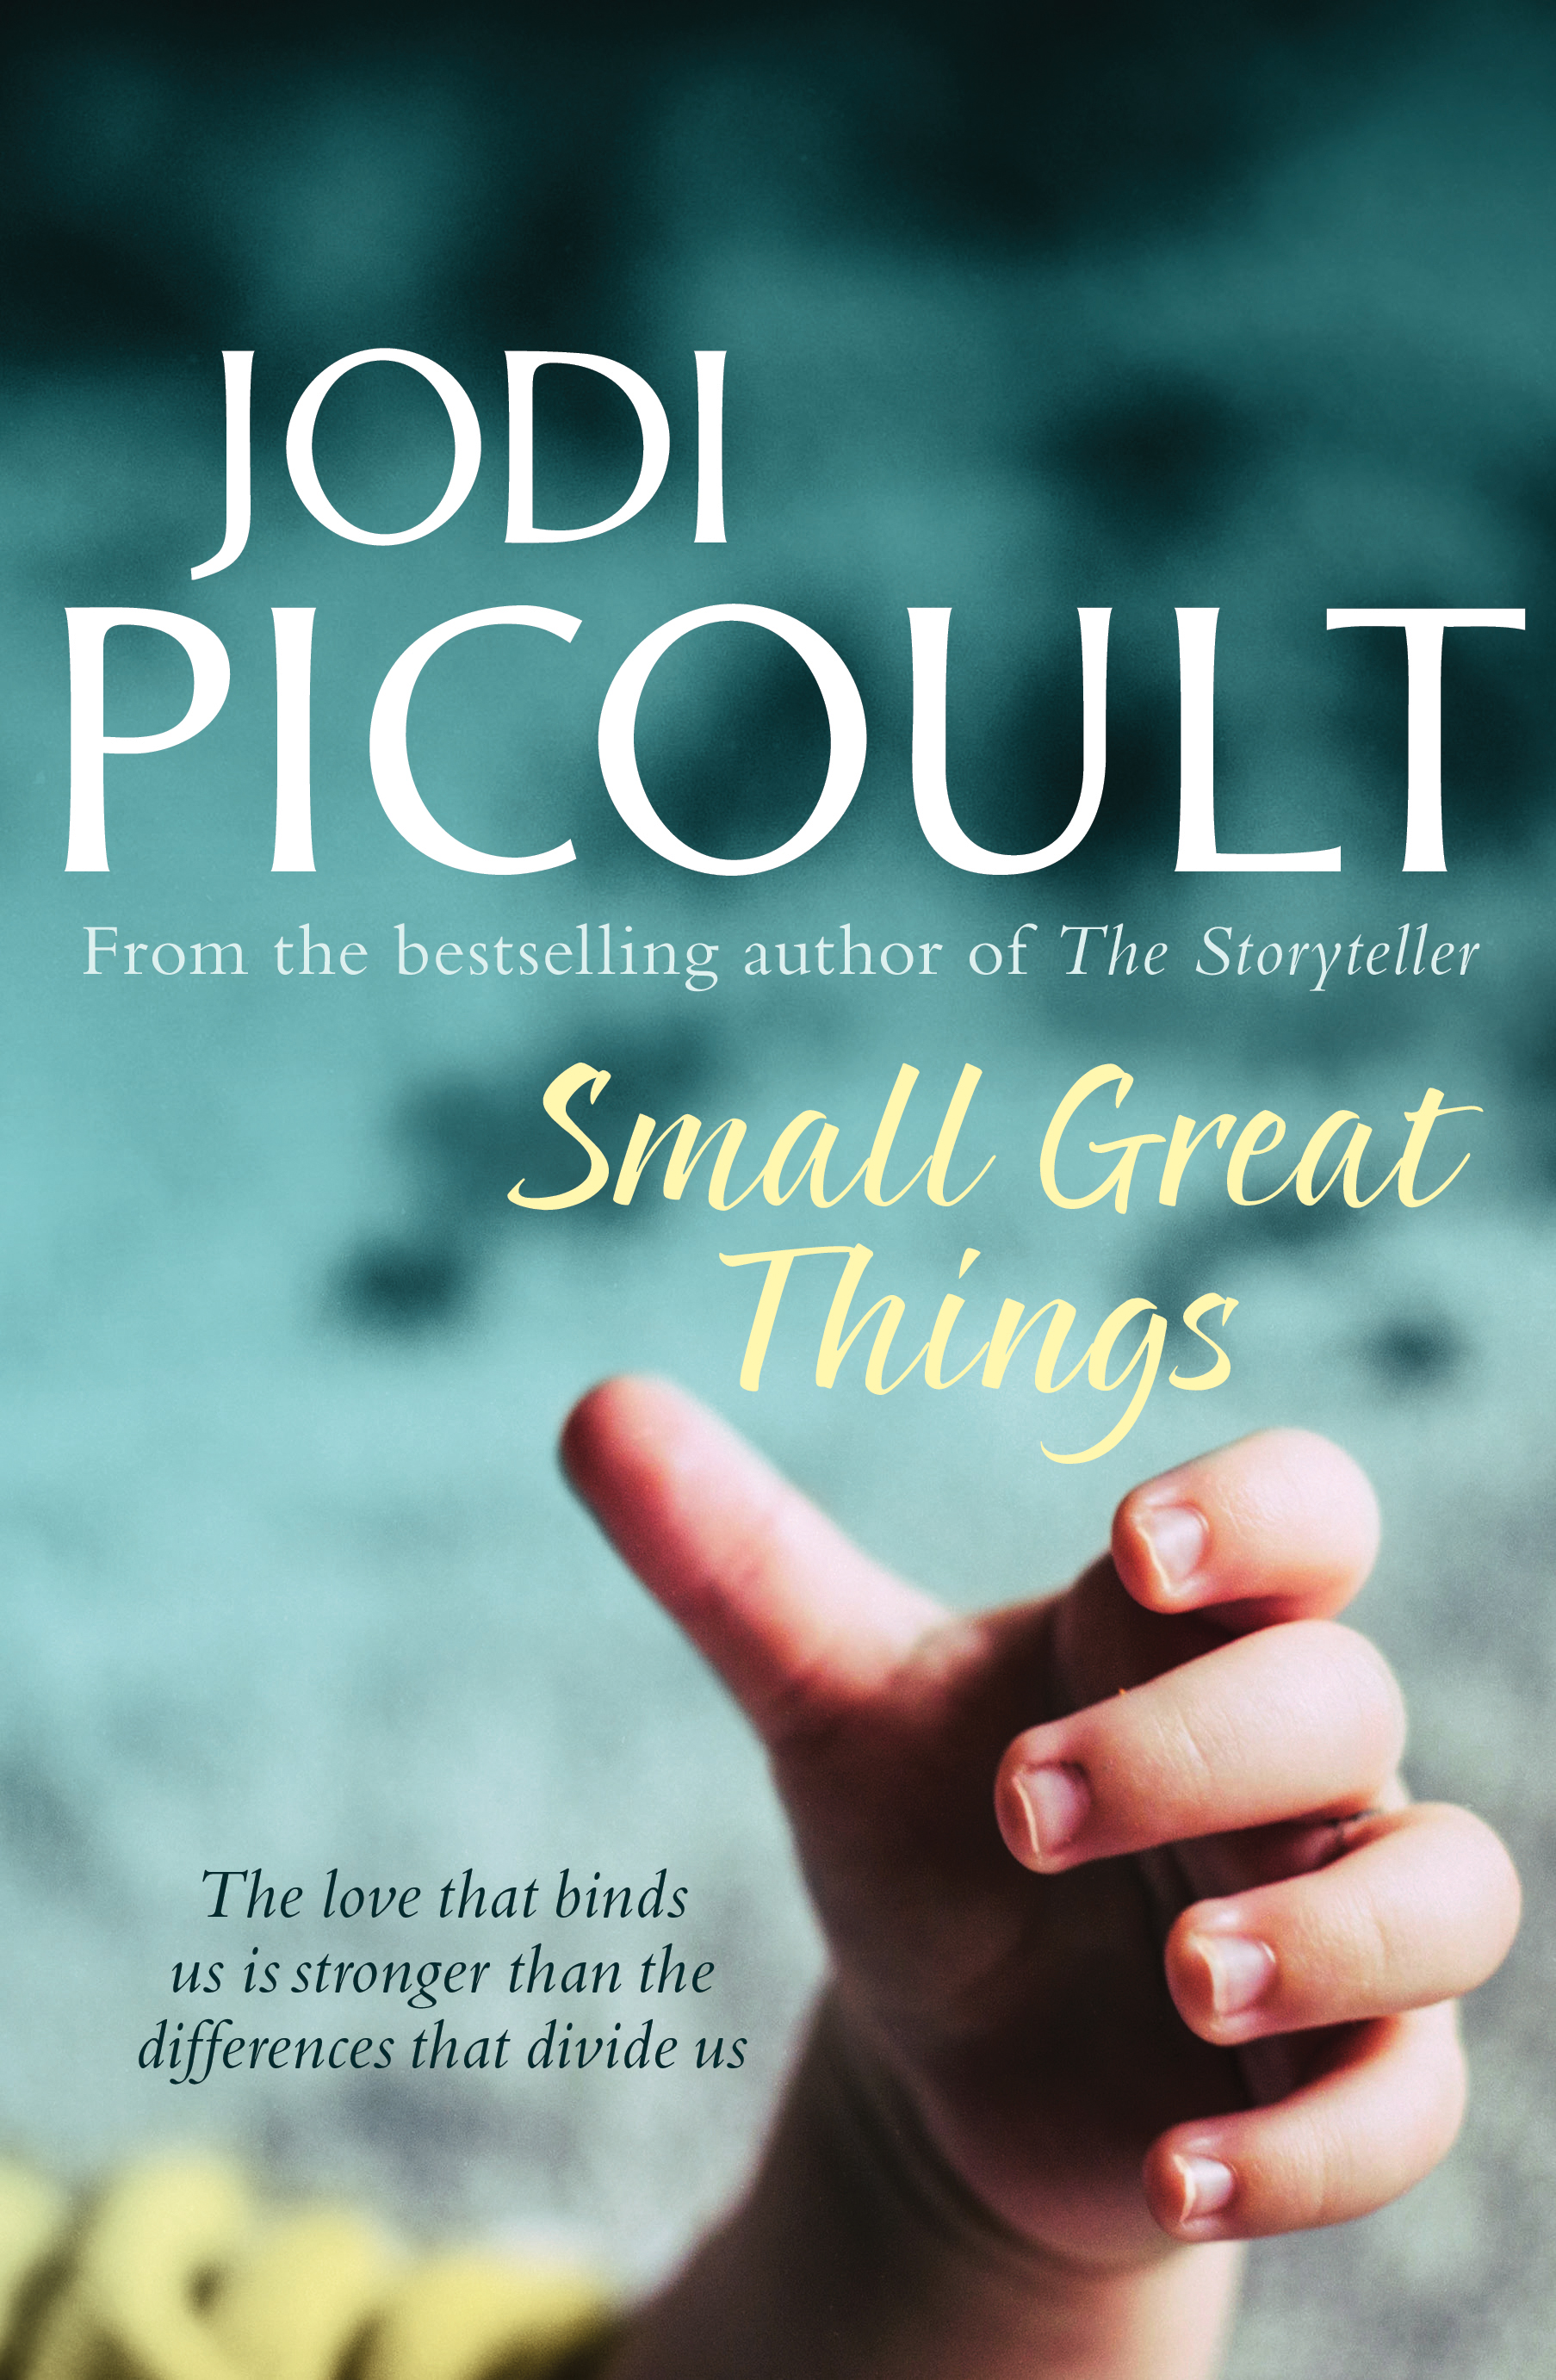 Small Great Things by Jodi Picoult, ISBN: 9781760110499